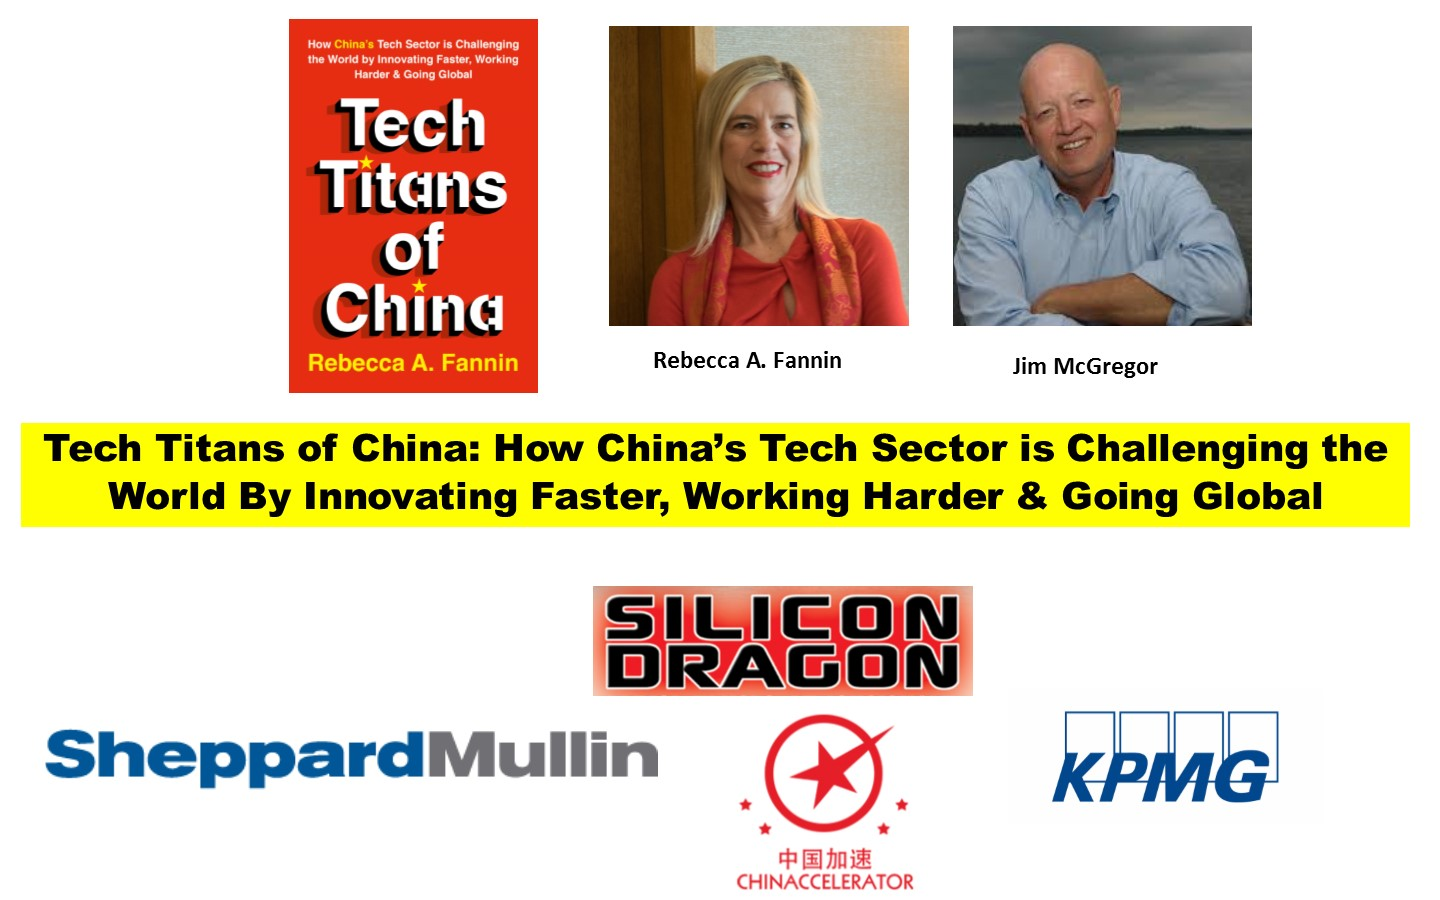 Silicon Dragon Shanghai 2019